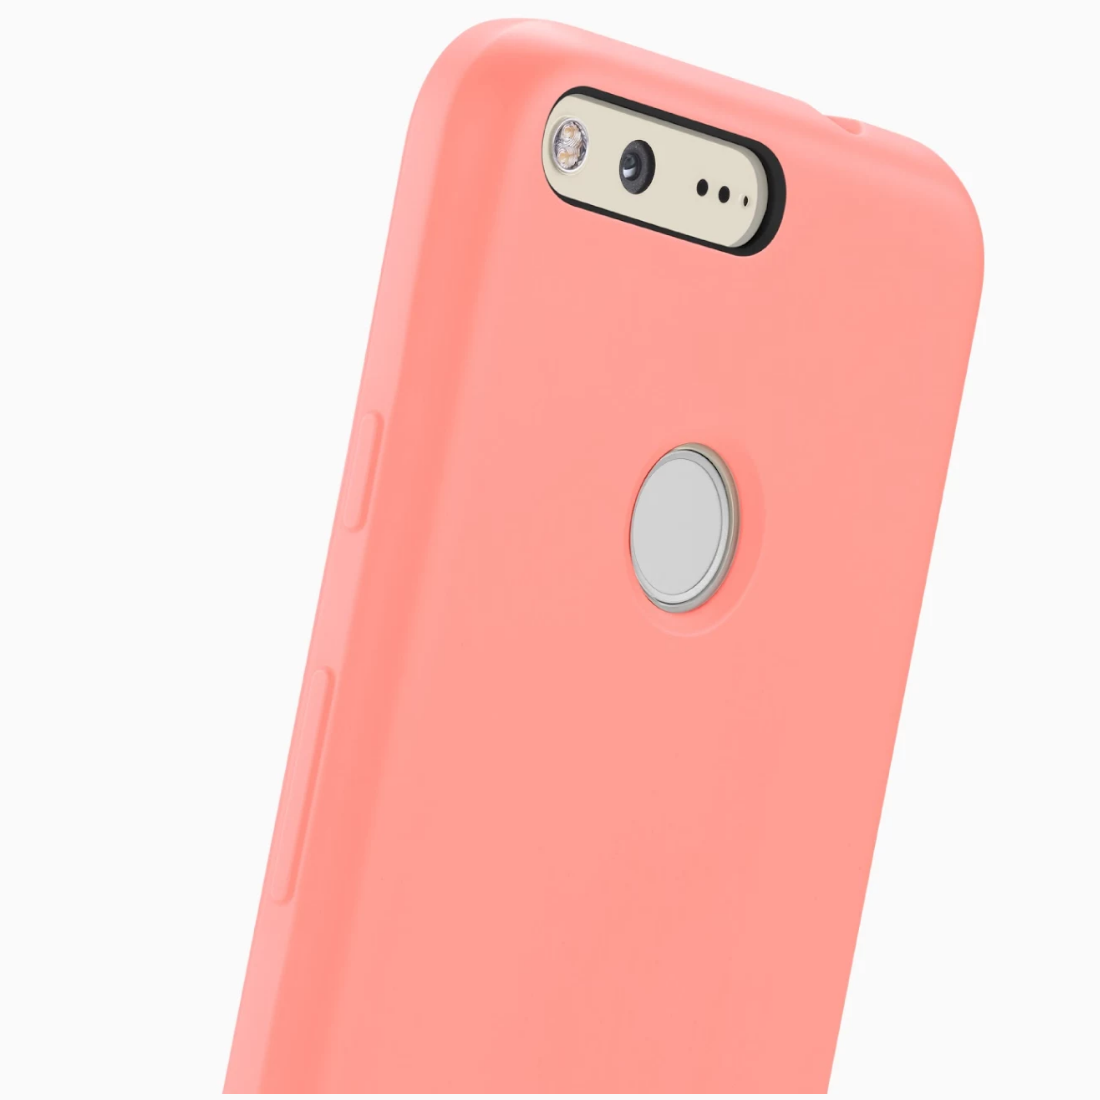 new arrivals d376e 9a7d8 Google's silicone Pixel, Pixel XL cases are now available in Blue ...